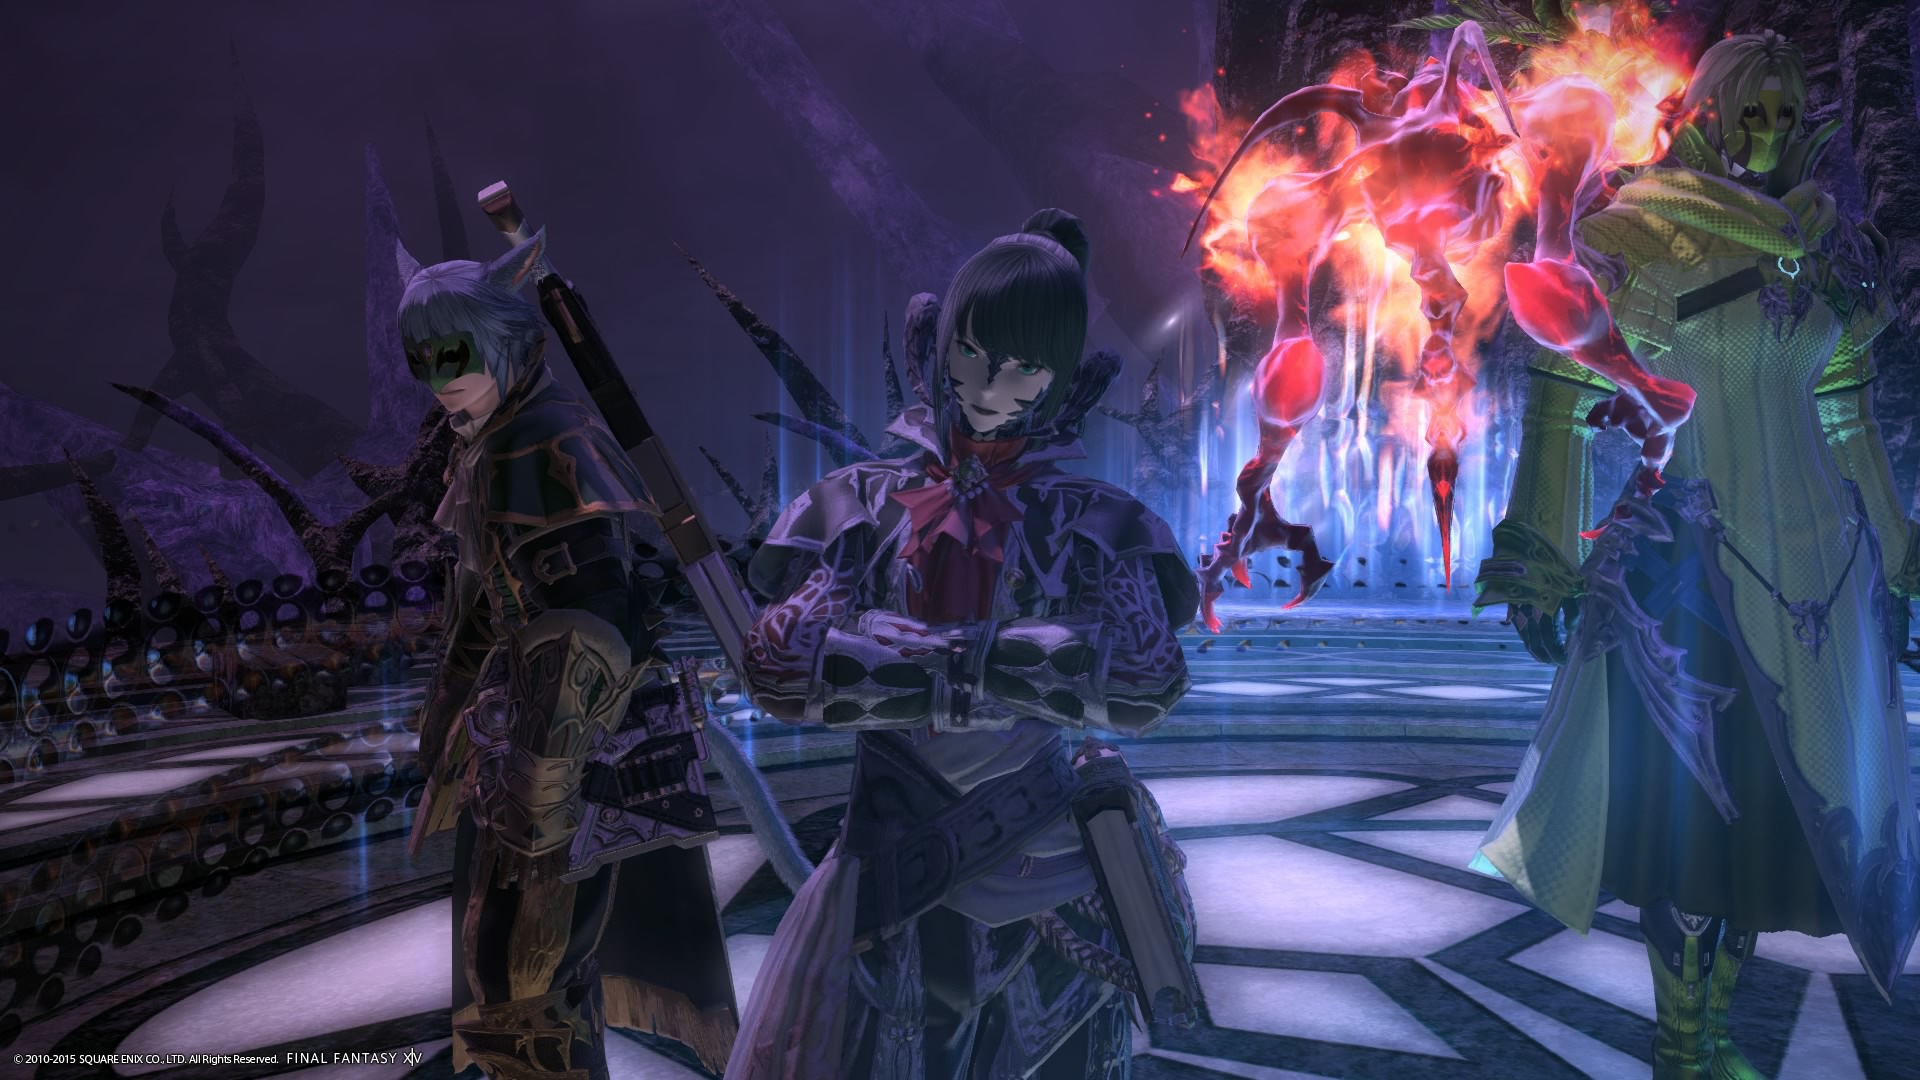 Final Fantasy XIV Raid Visual Guide: Void Ark